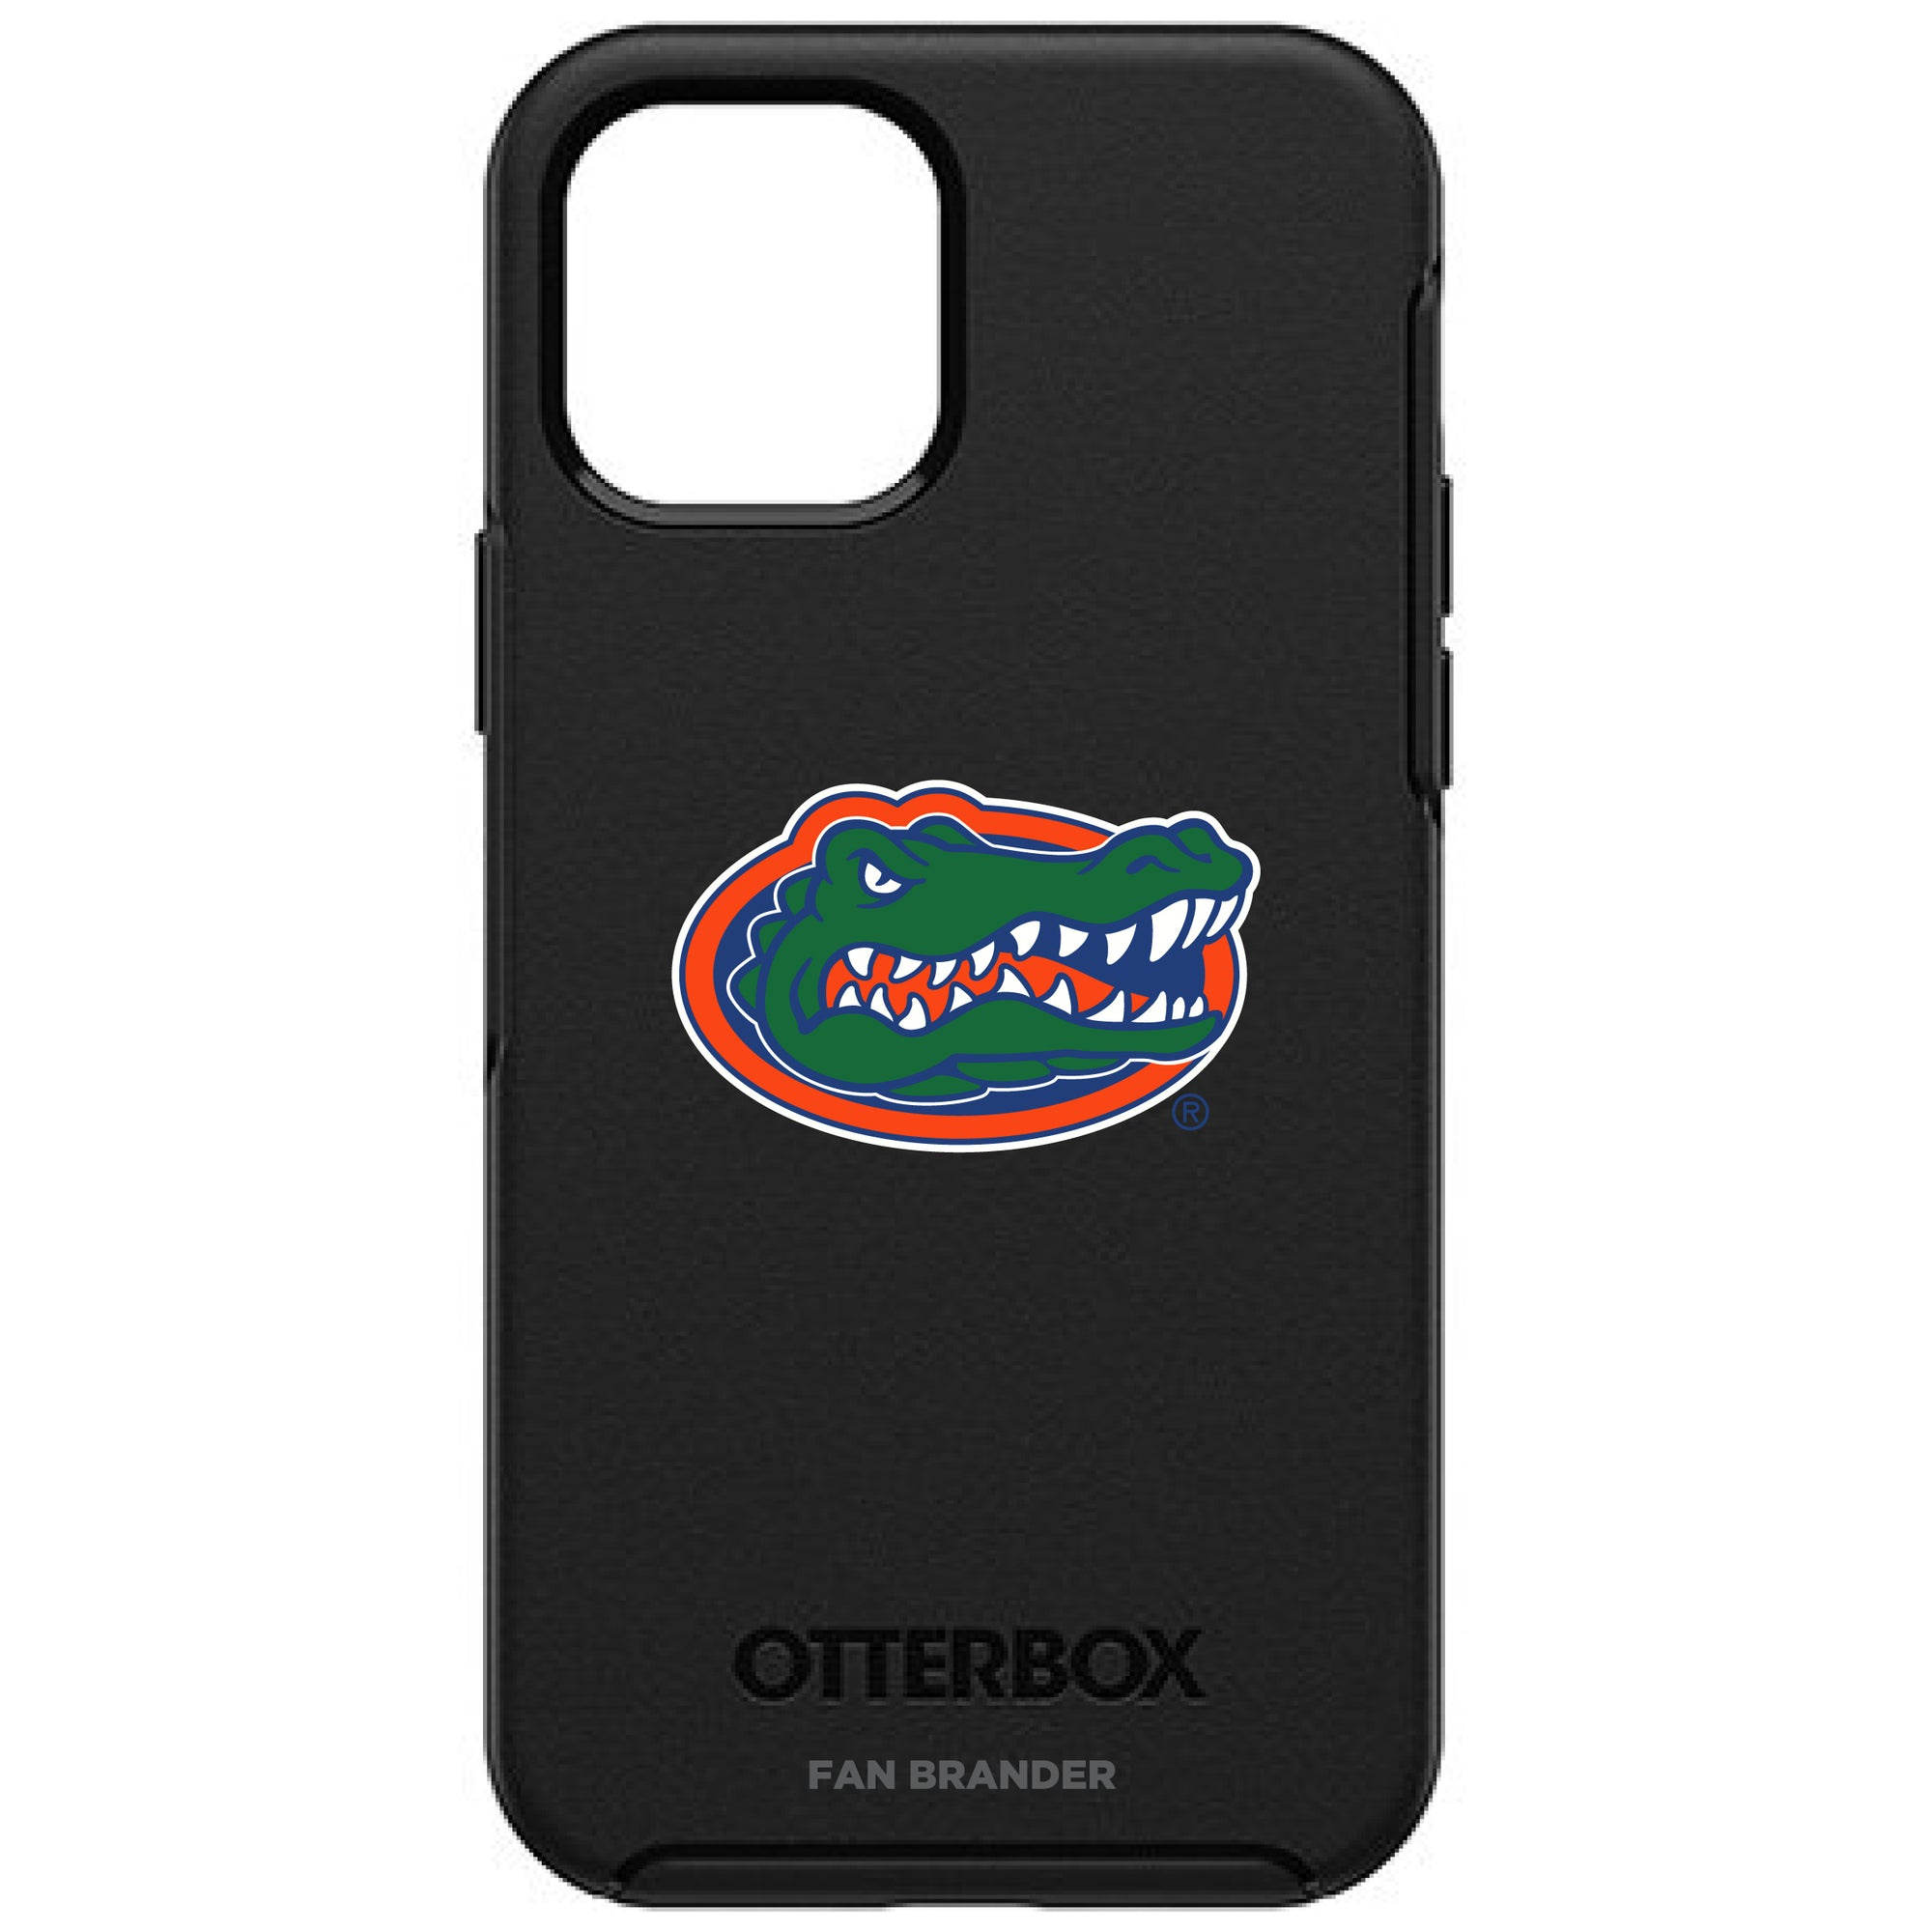 Florida Gators Otterbox iPhone 12 Pro Max Symmetry Case